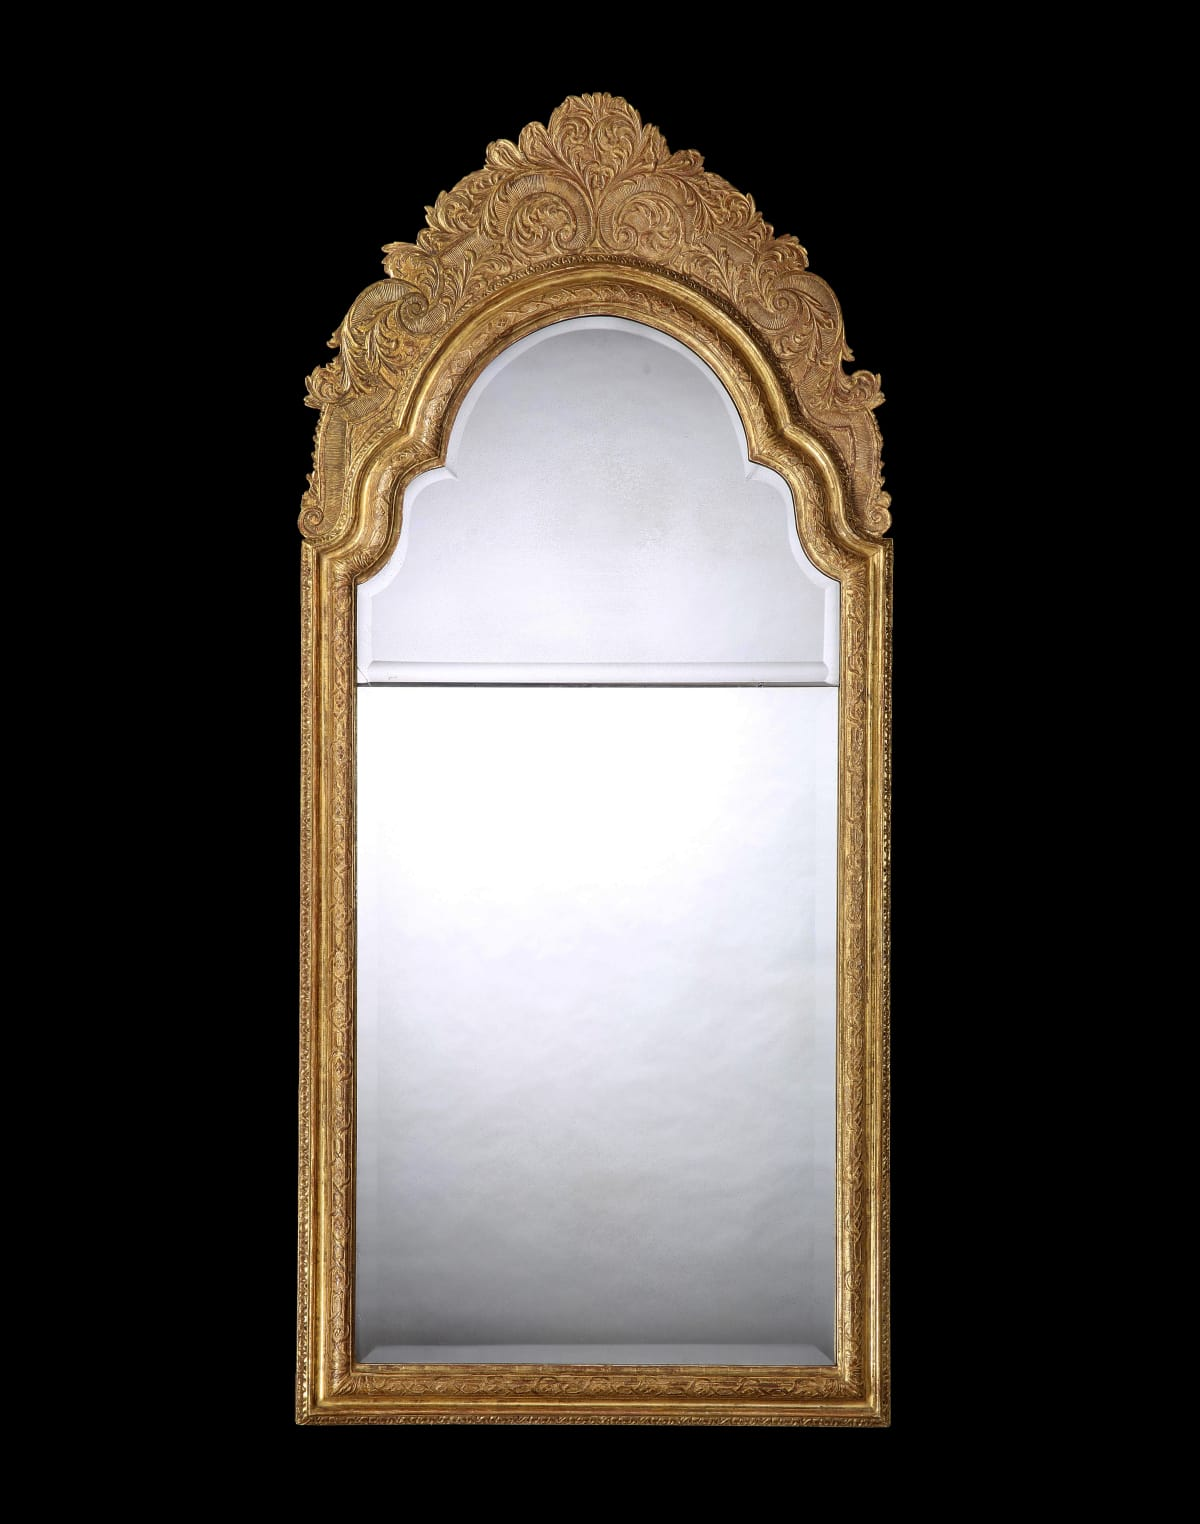 A QUEEN ANNE GILTWOOD PIER MIRROR, ENGLISH, CIRCA 1715